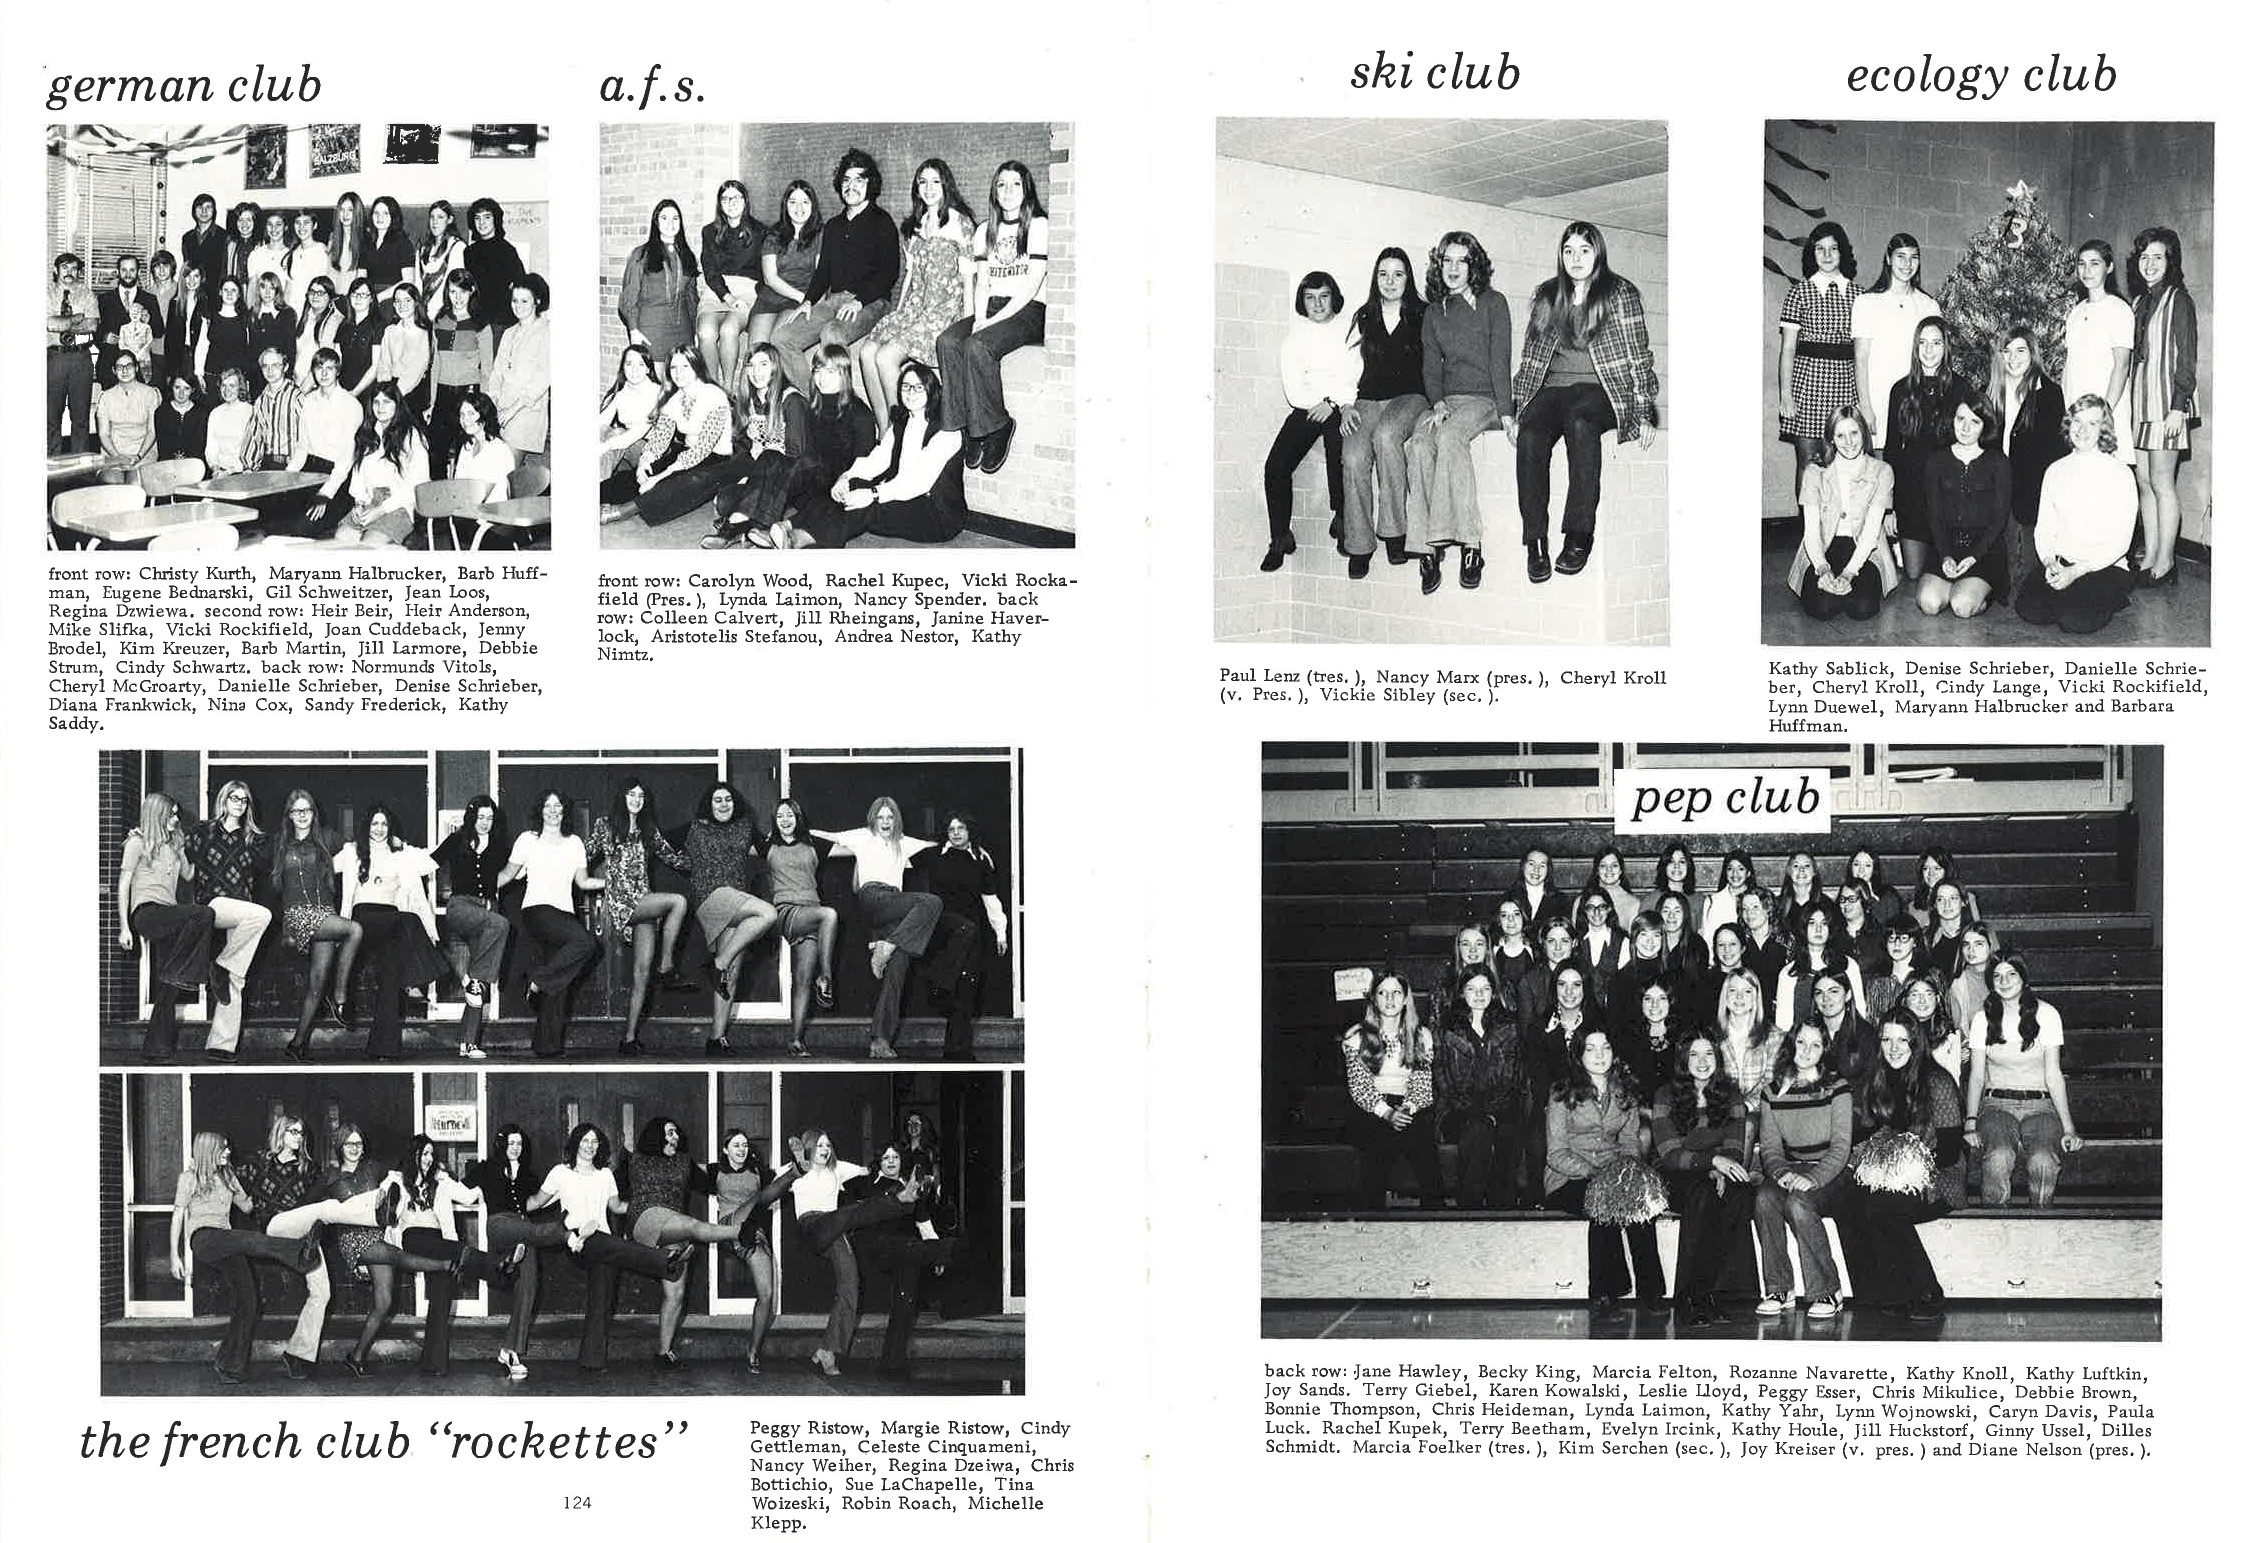 1973_Yearbook_124-125.jpg